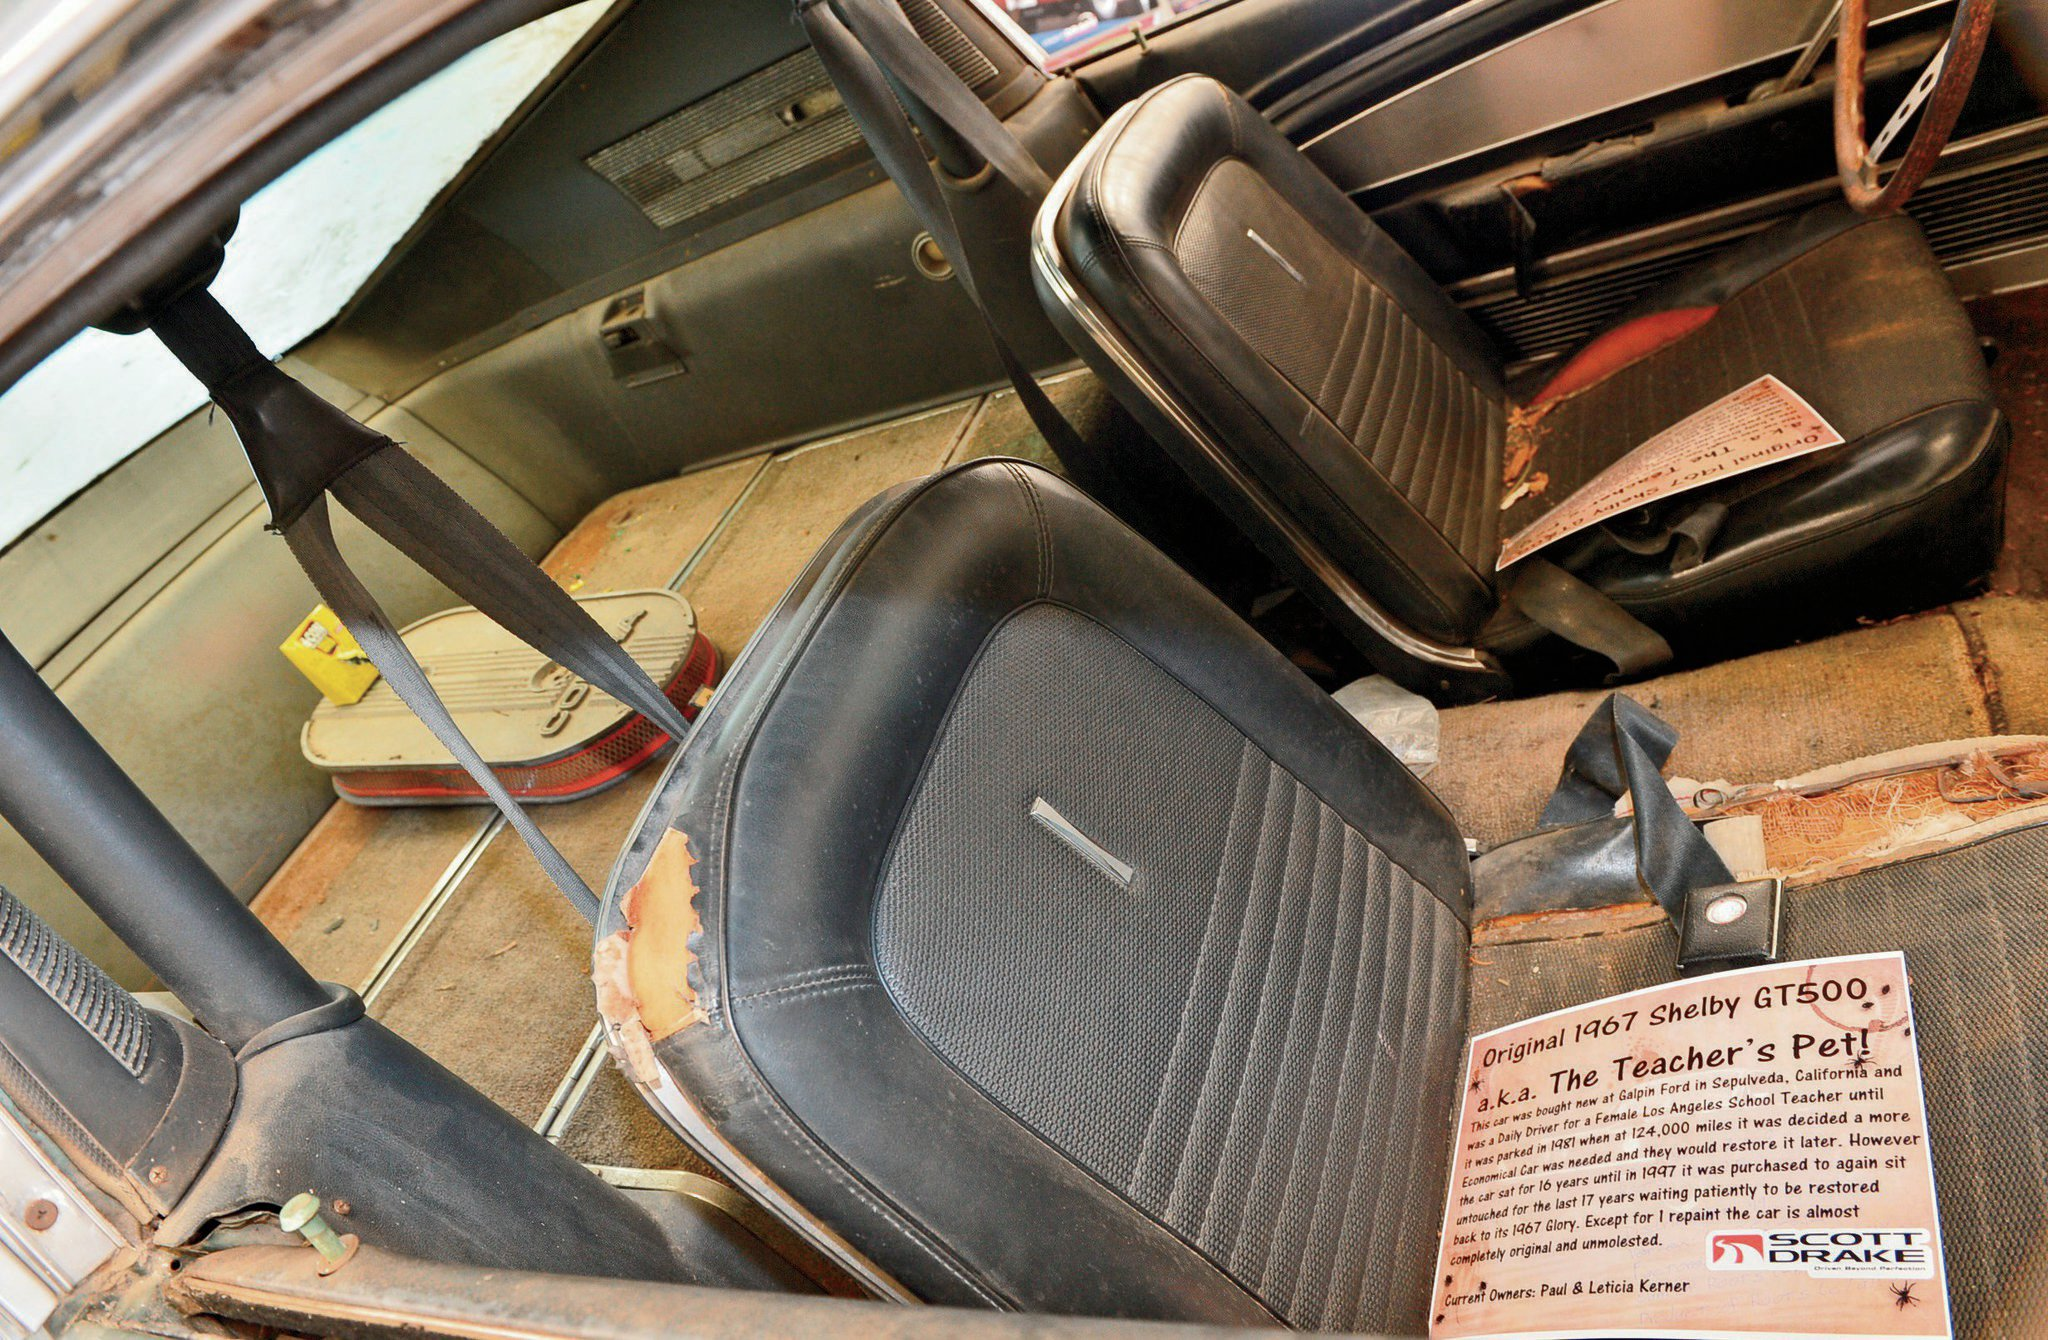 The inertial reel shoulder harnesses are still in place. Note the oval Cobra air cleaner on the fold-down rear seat shelf.